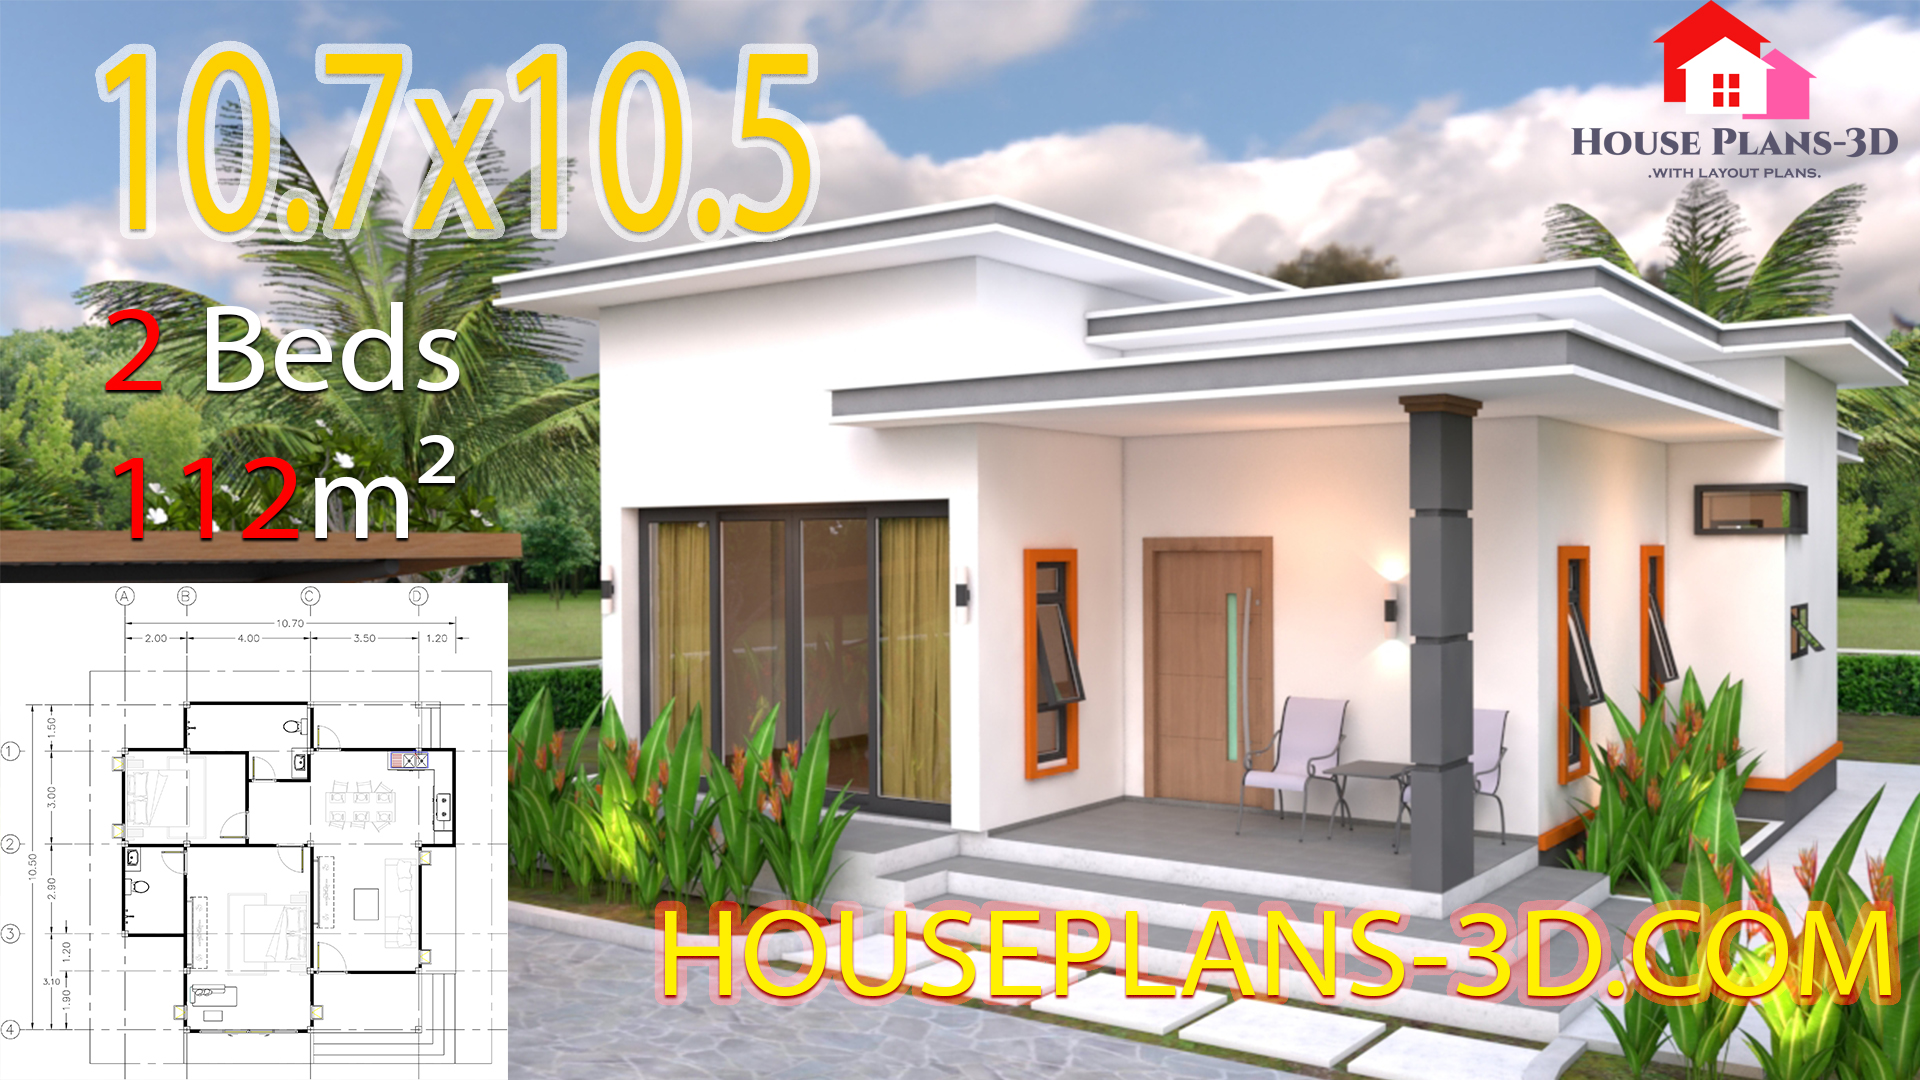 House Plans 10 7x10 5 With 2 Bedrooms Flat Roof Samphoas Plan